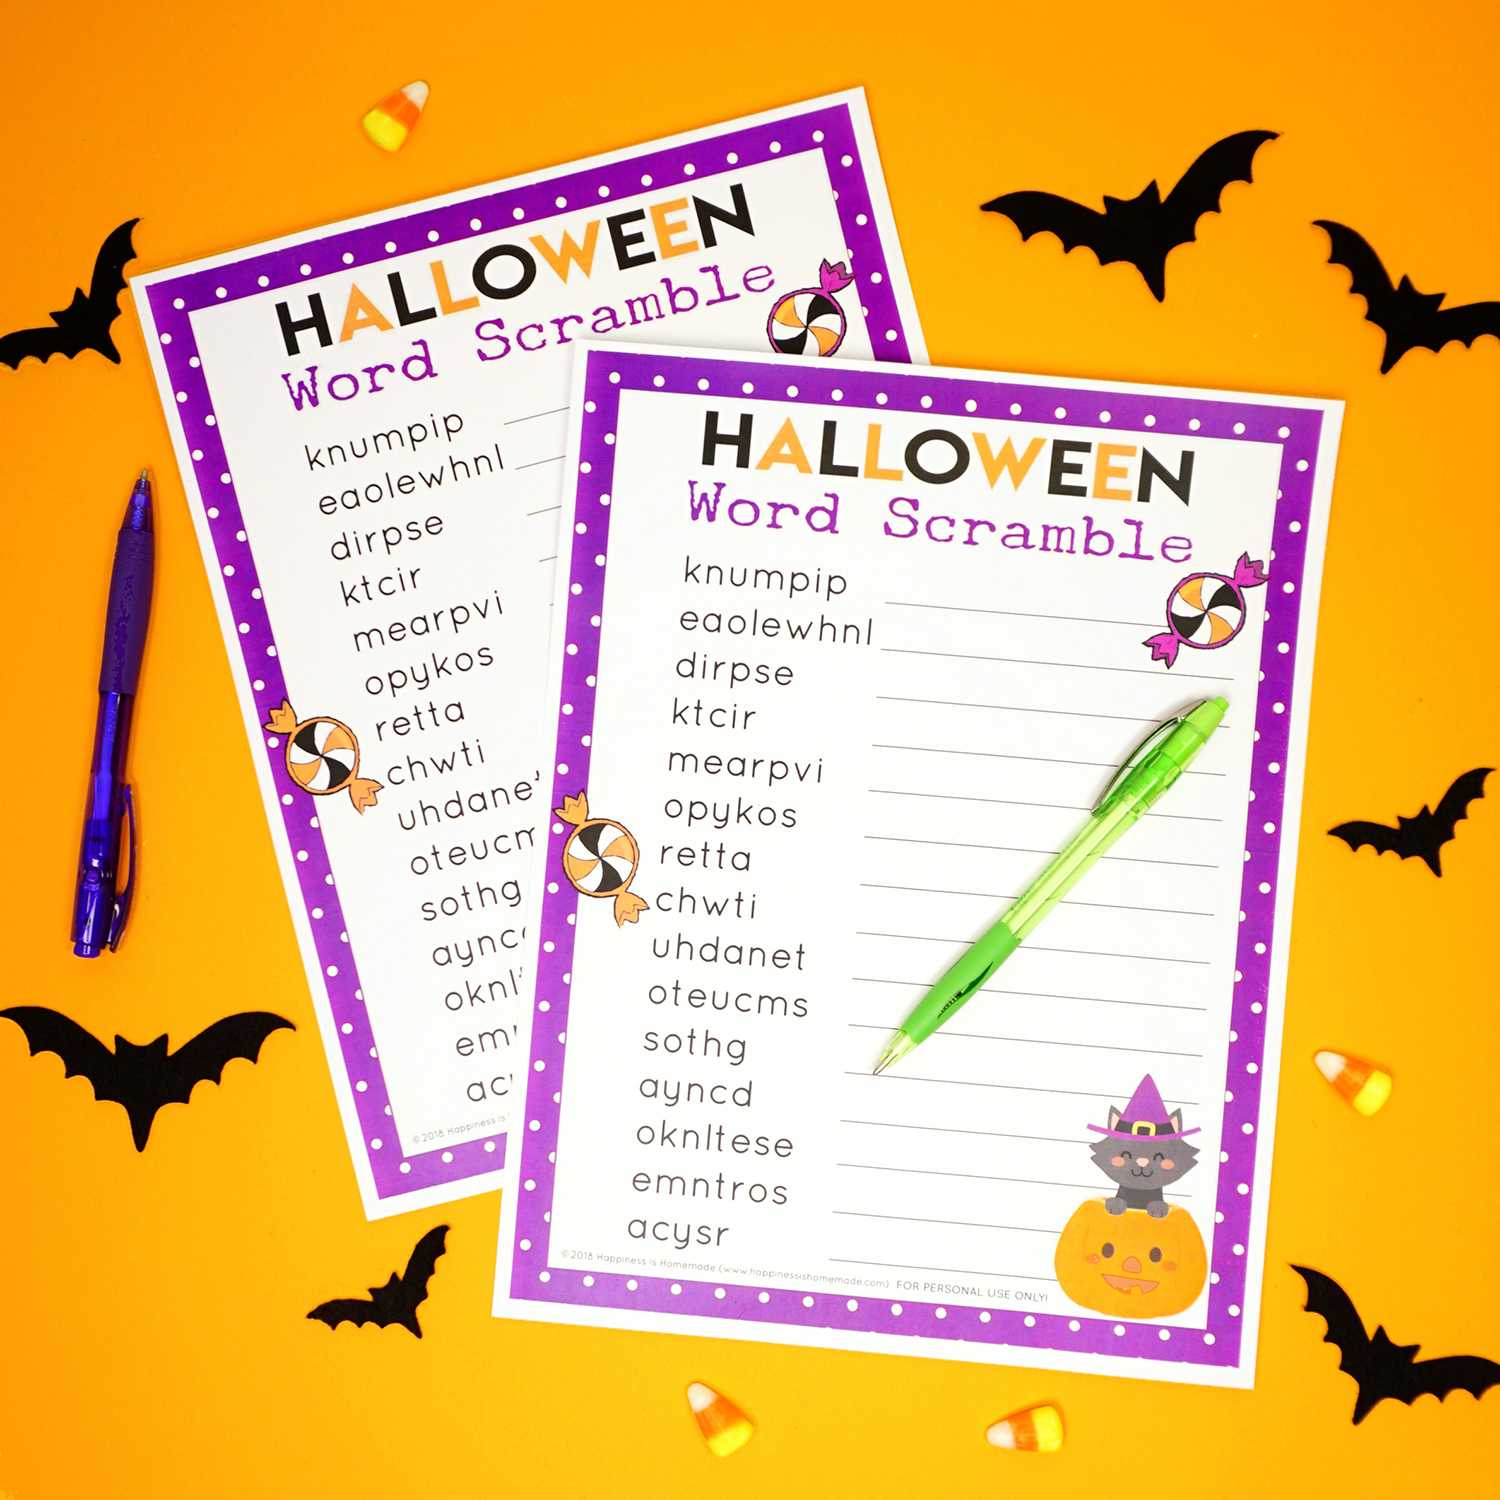 020 Halloween Word Scramble For Kids And Adults Template Within Halloween Certificate Template